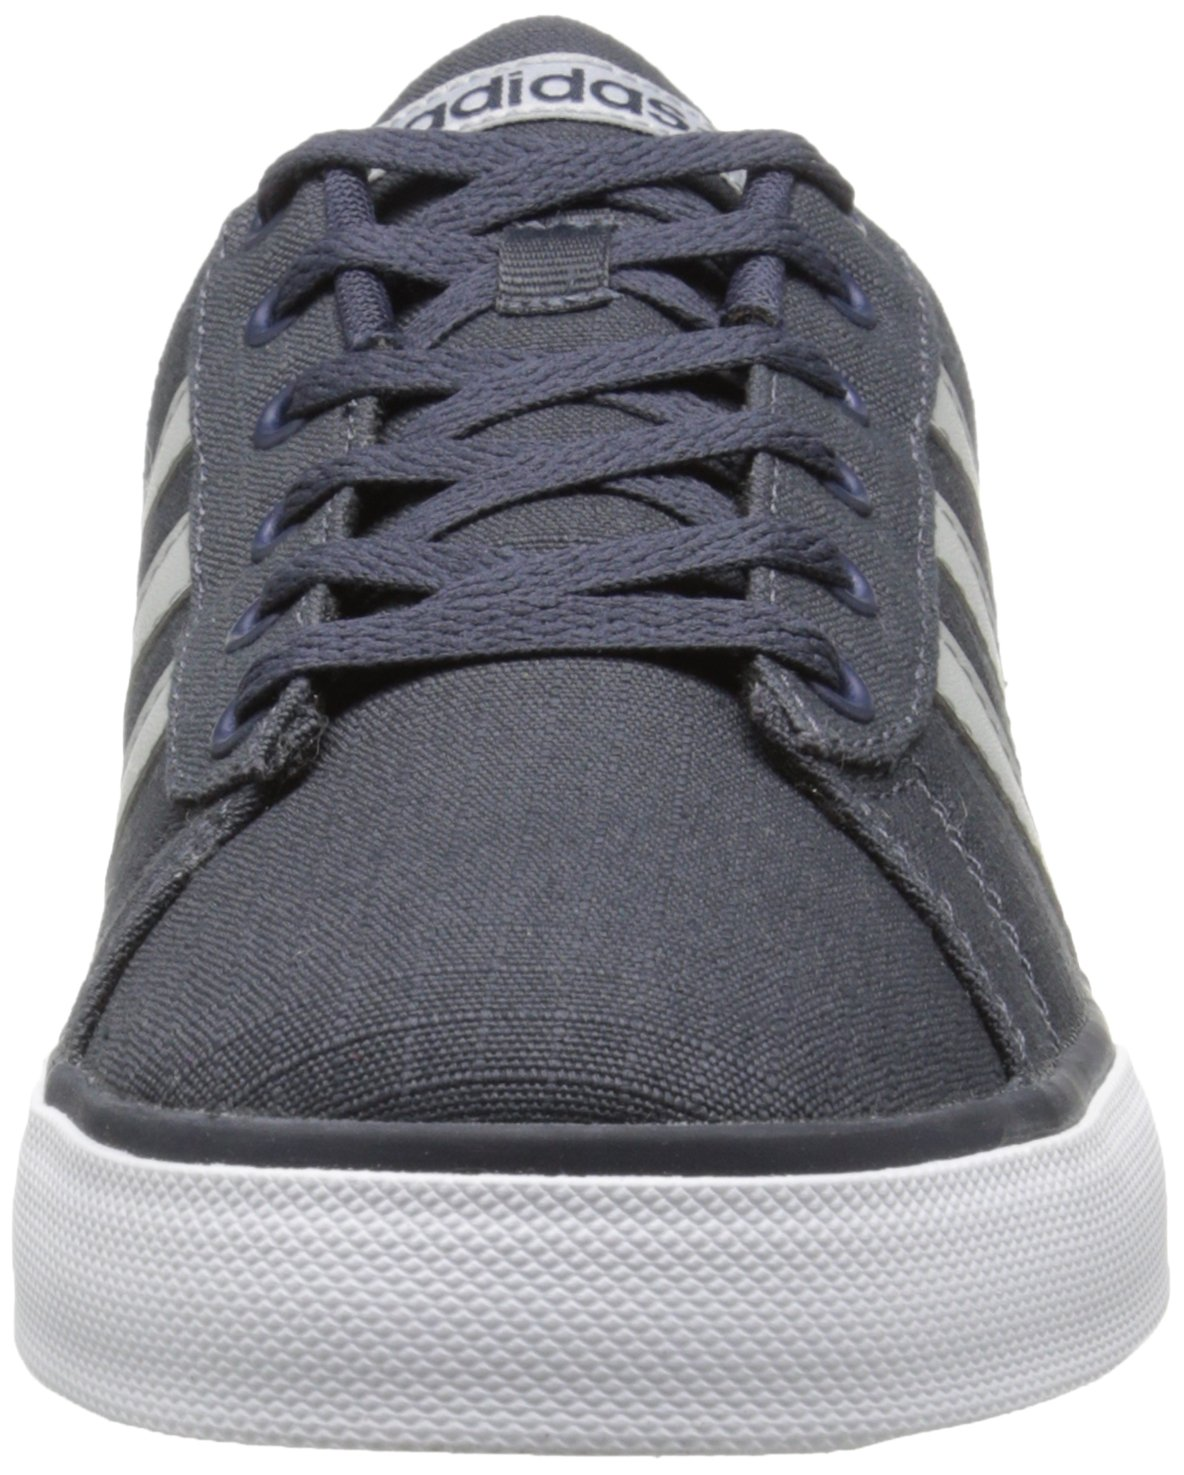 adidas NEO Men's Skateboarding SE Daily Vulc Lifestyle Skateboarding Men's Shoe B00II2Z88Q 8 M US|Navy/Clear Onix Grey/White 2c6596